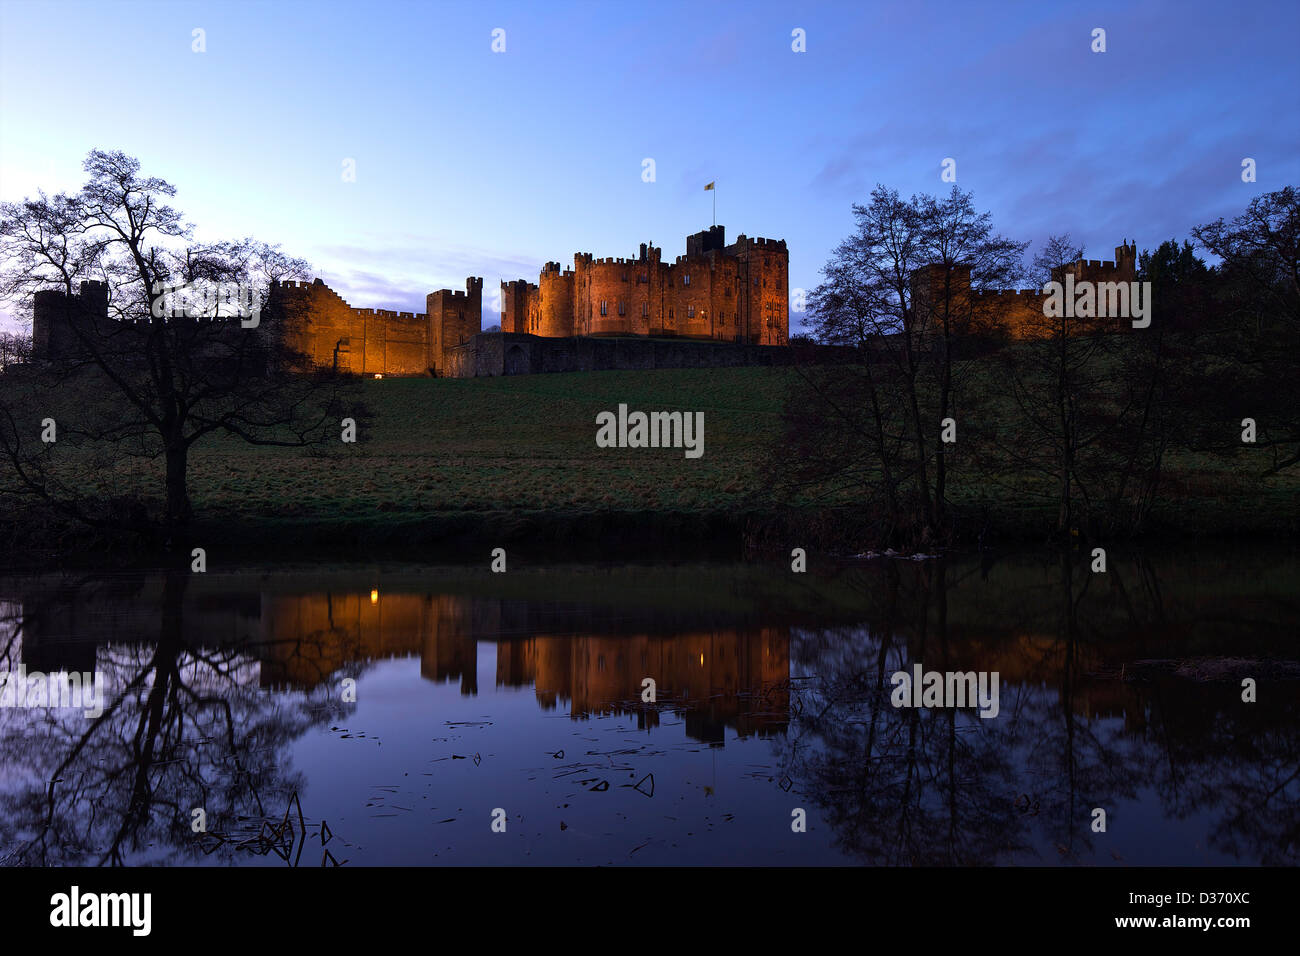 Alnwick Castle and River Aln, Northumberland, North Eastern England, UK, GB - Stock Image